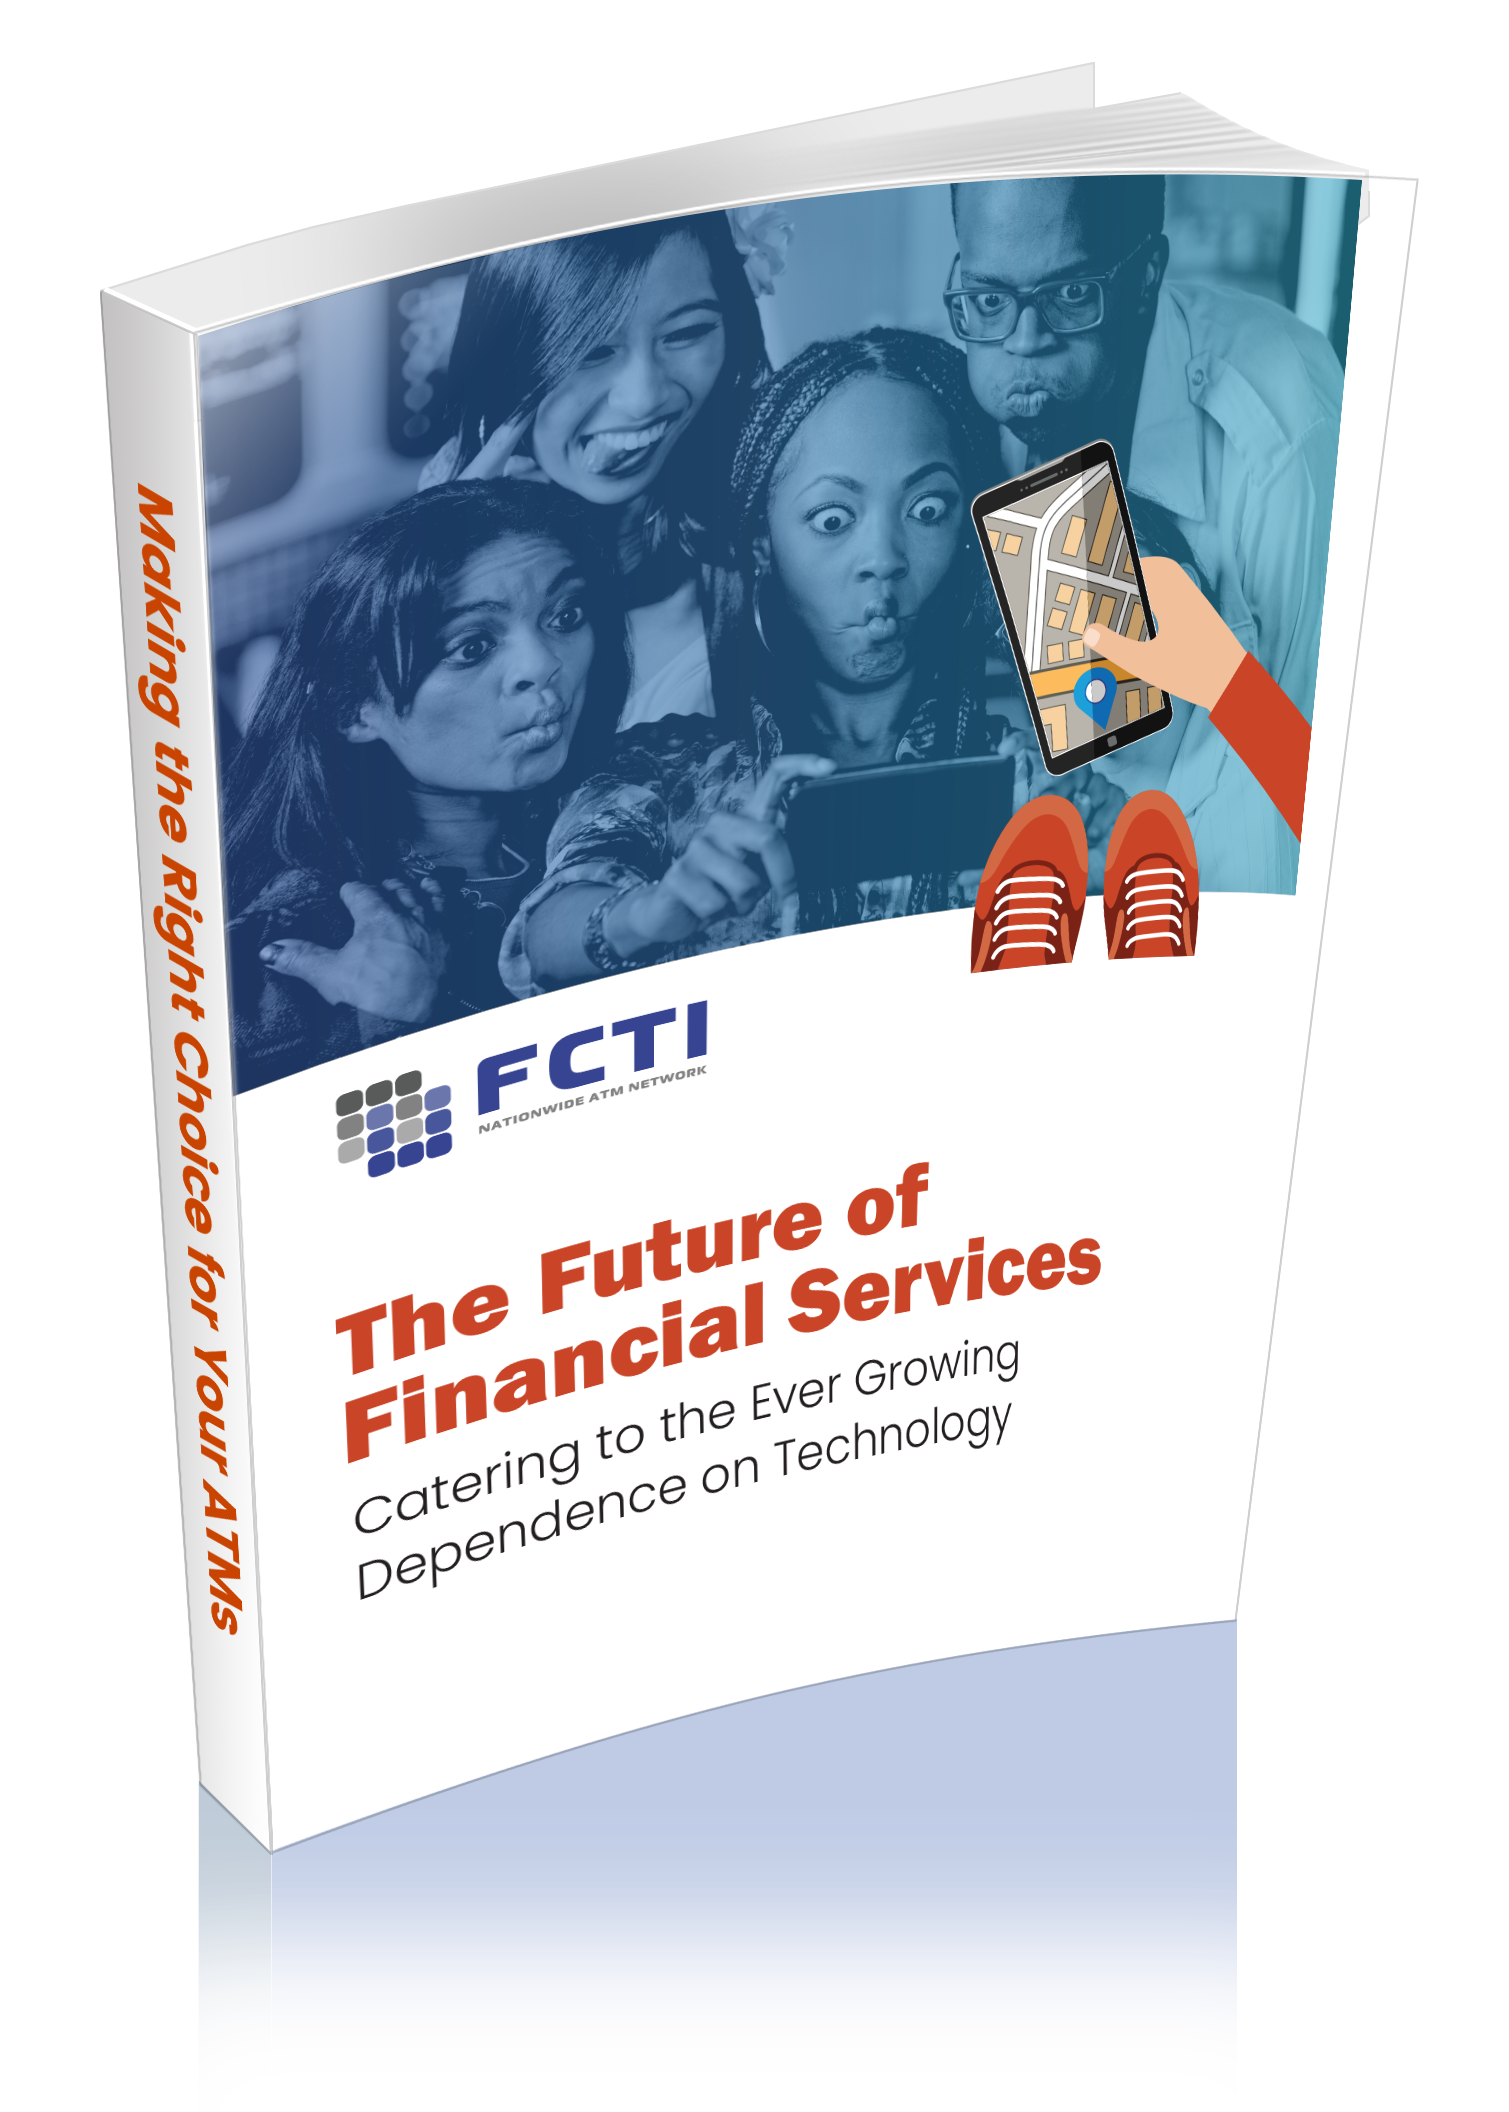 Future of Financial Services in Digital Dependent World